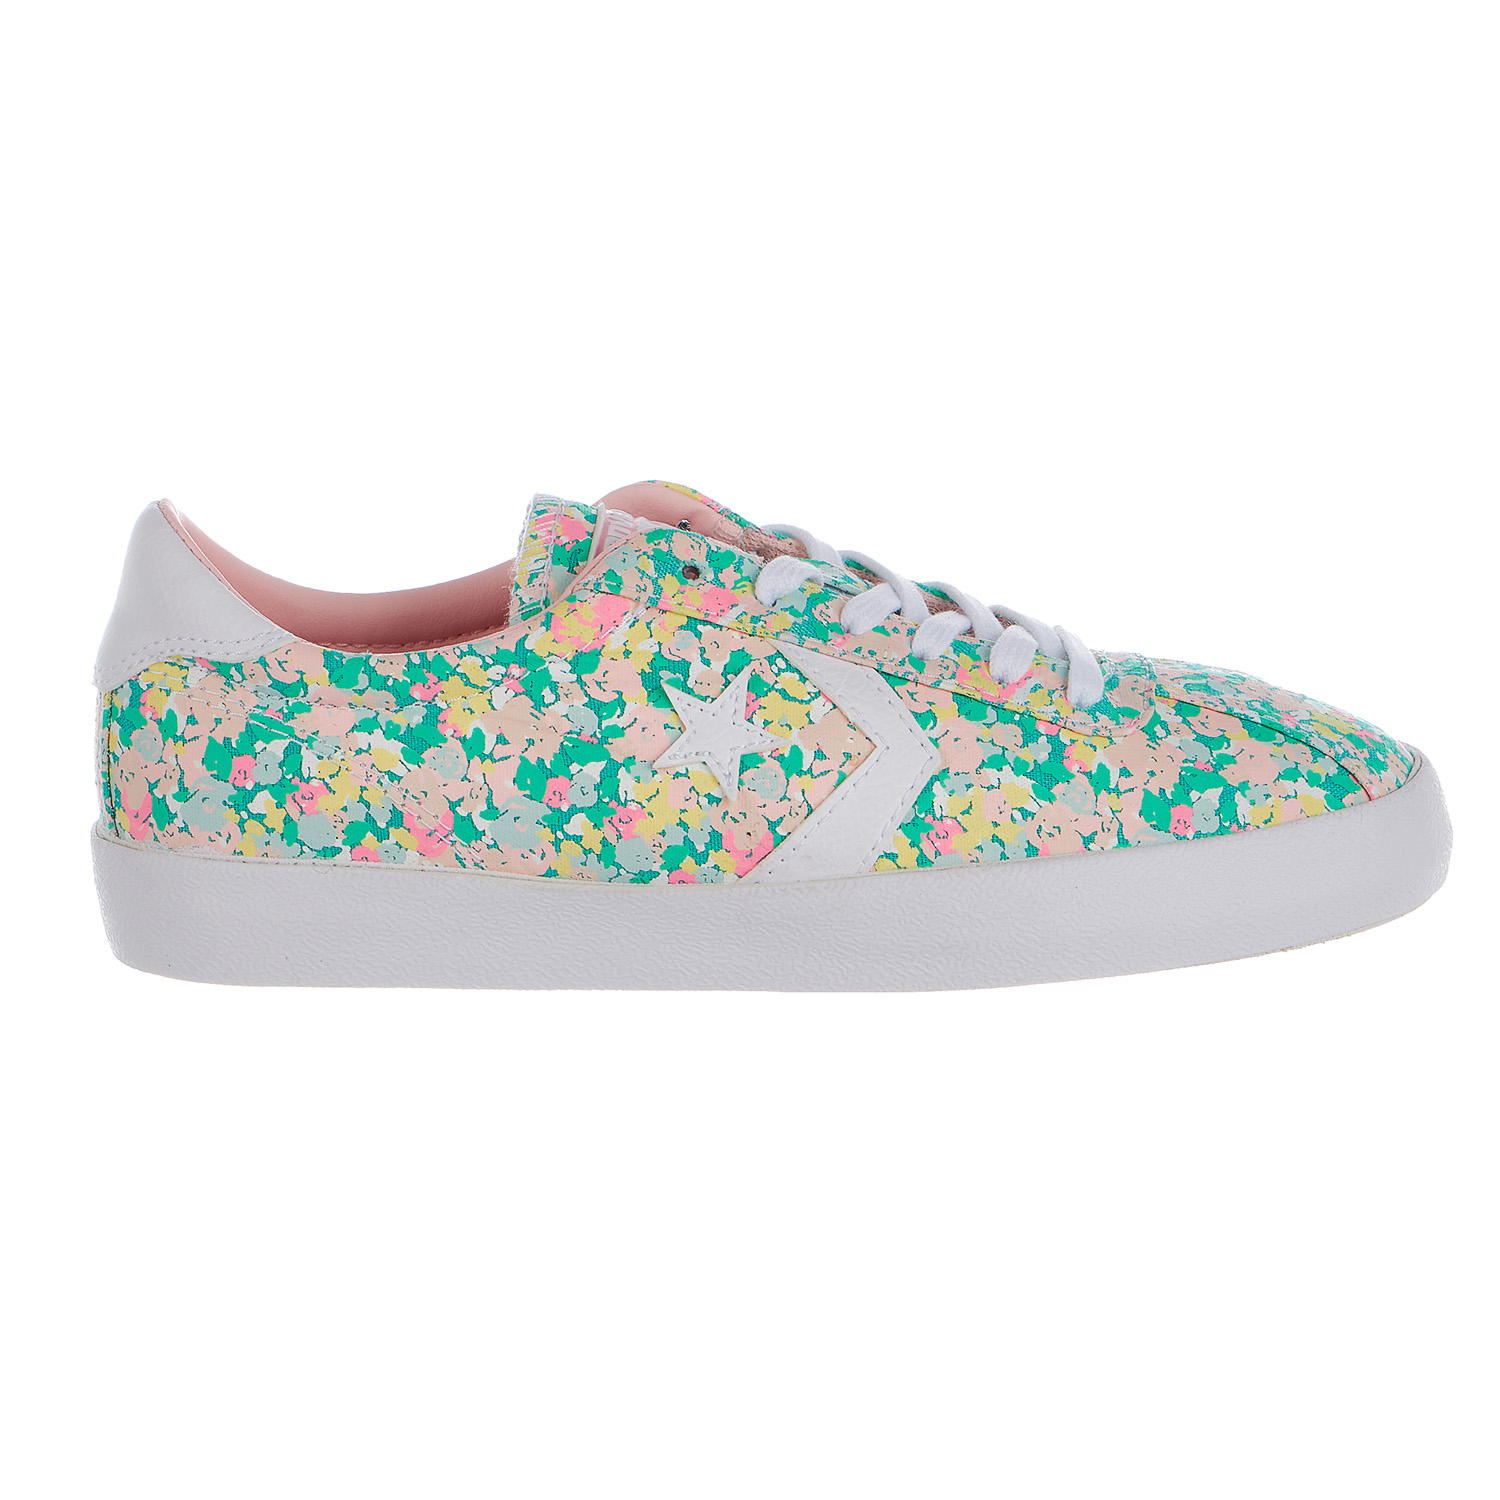 Converse Breakpoint Floral Low Top Sneaker Womens by Converse